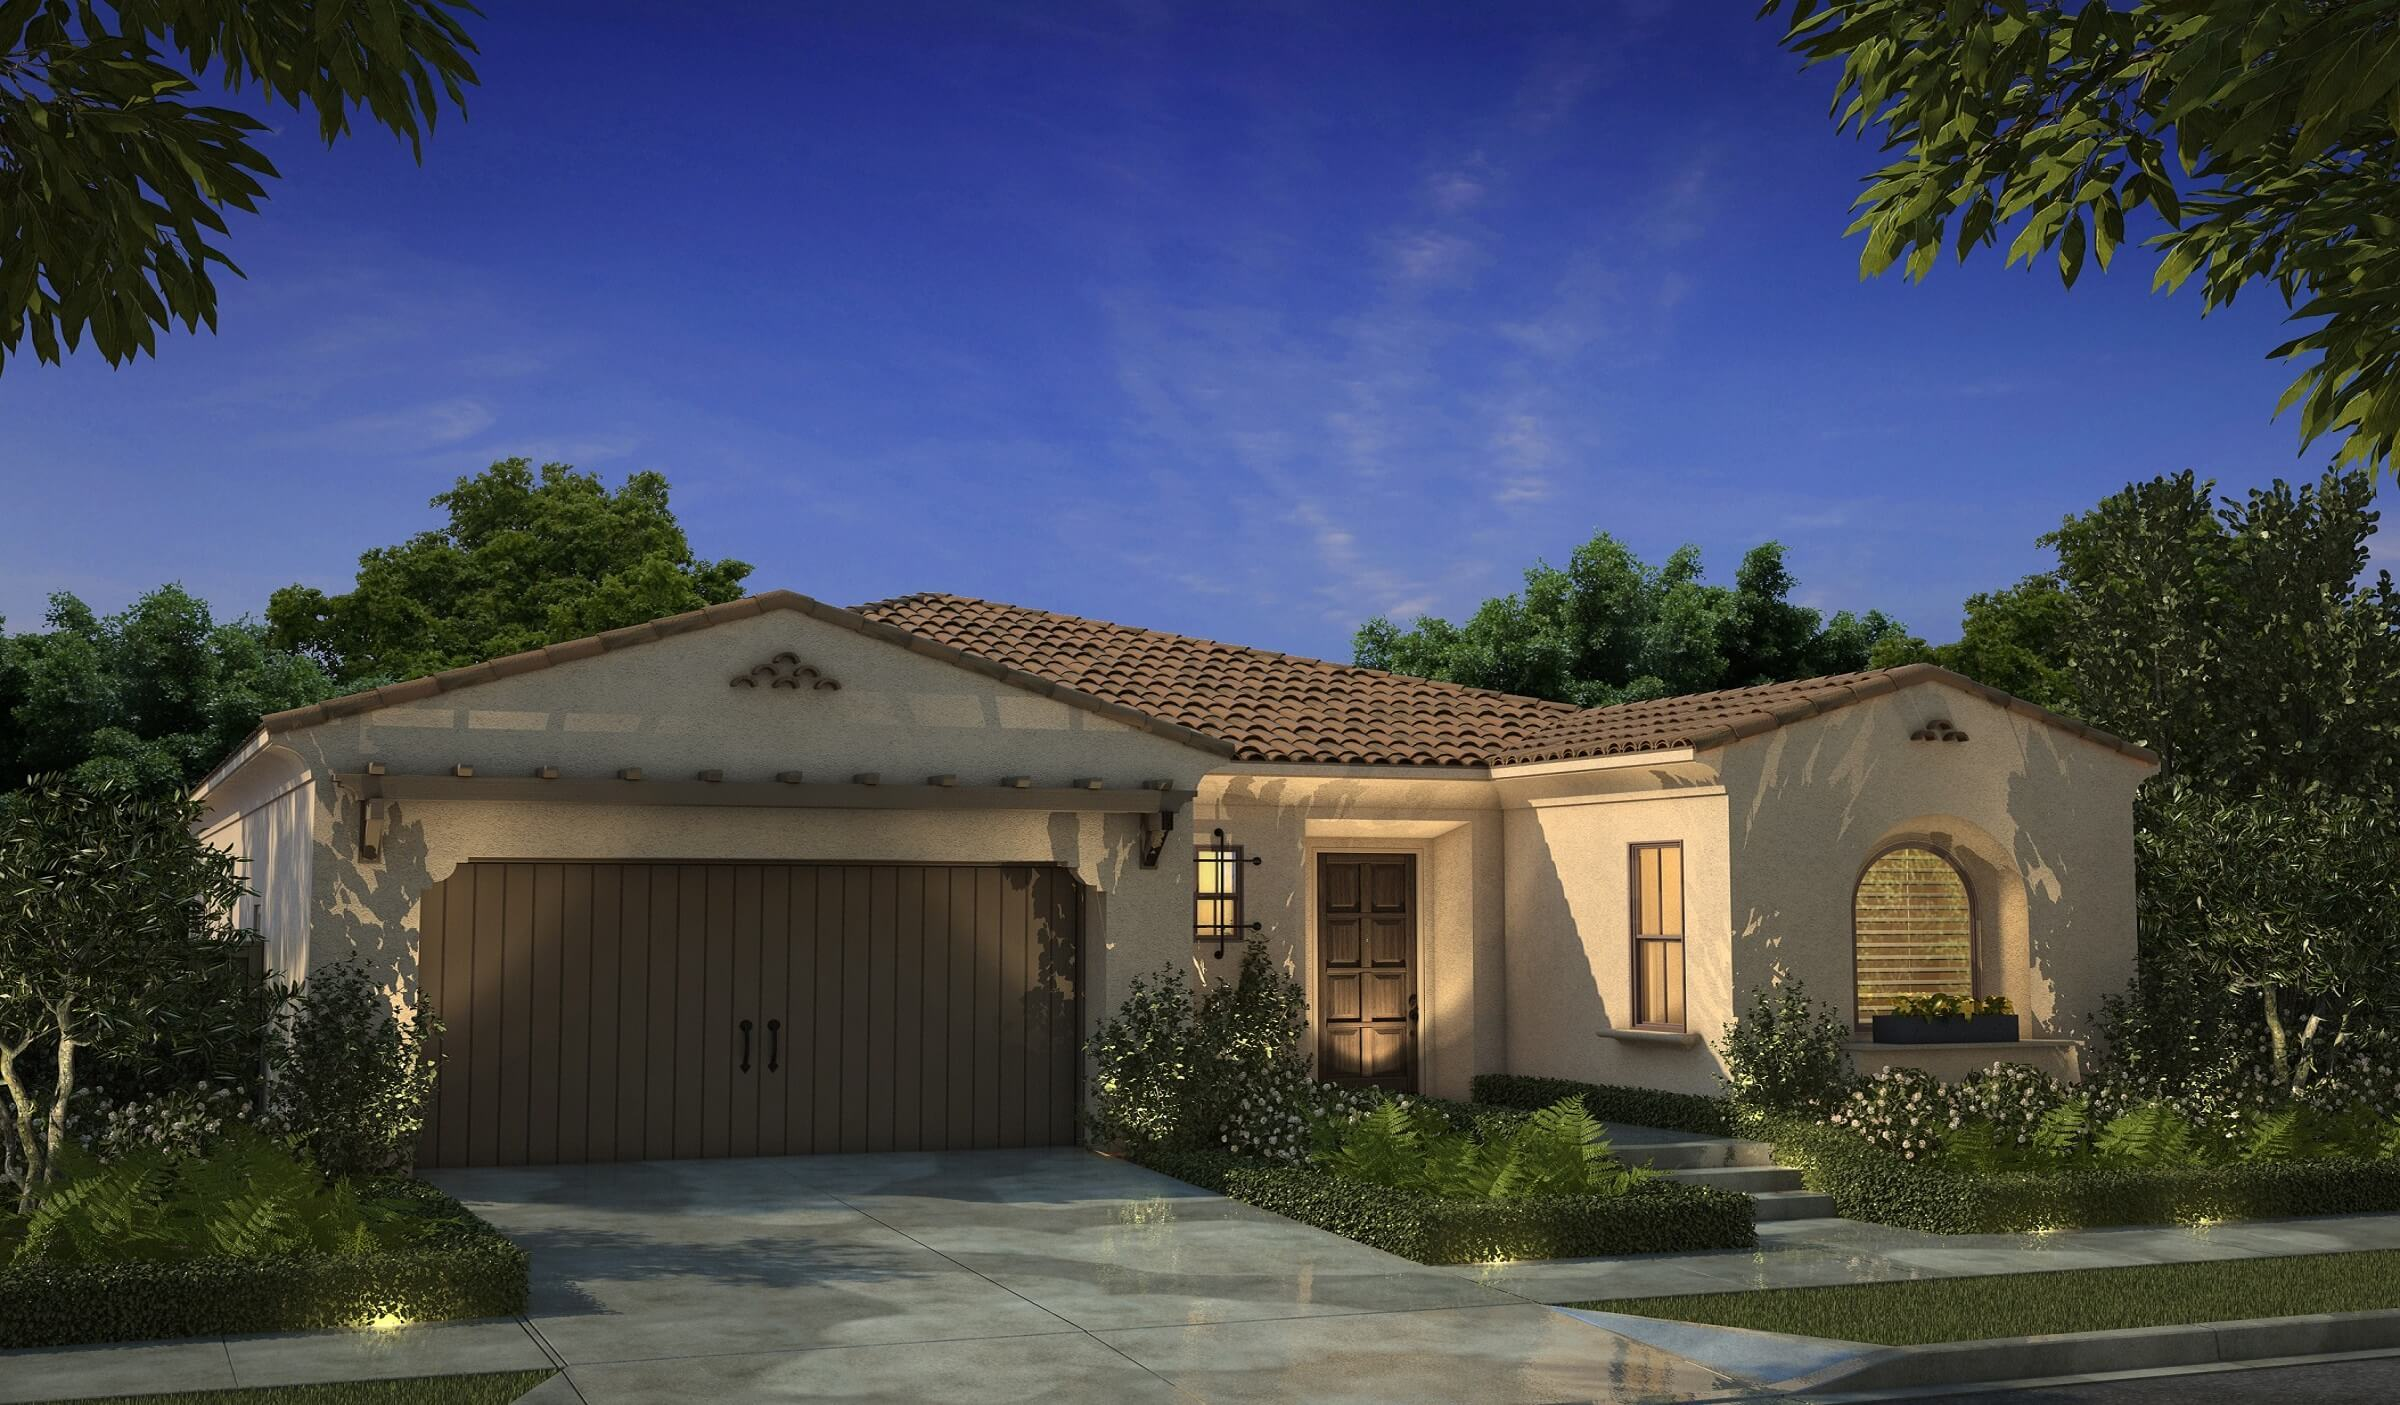 Single Family for Sale at Calistoga At Eastwood Village - Residence 4 109 Frontier Irvine, California 92620 United States